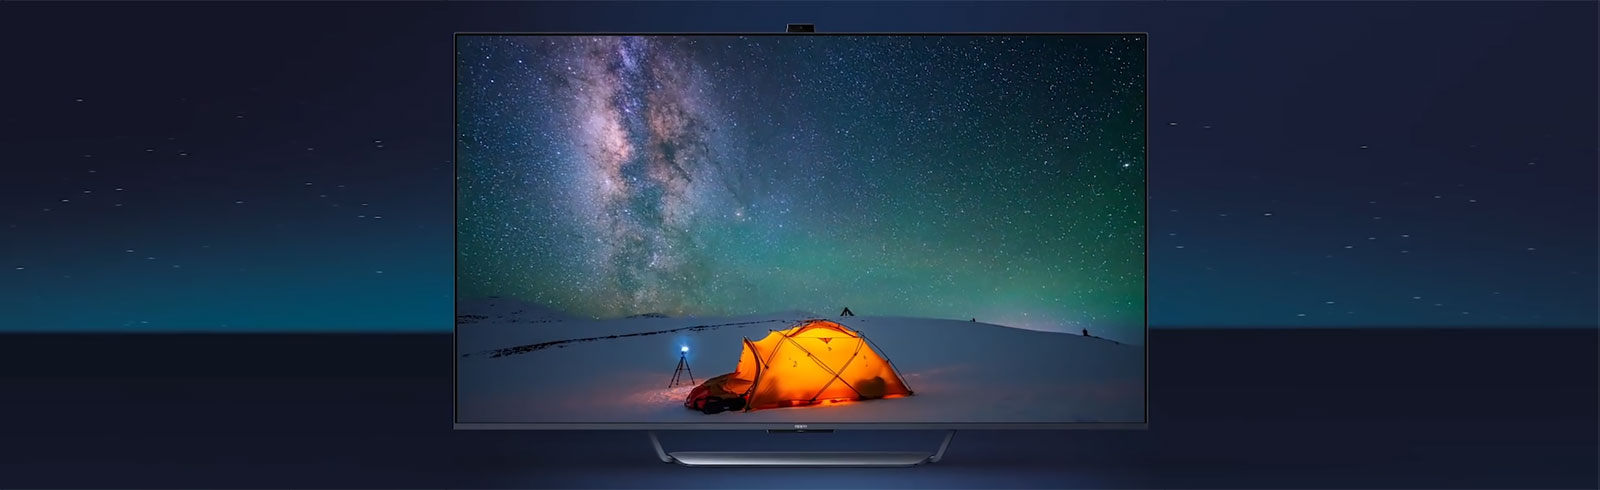 Oppo will hold a launch conference on October 19th for its first TV and other products